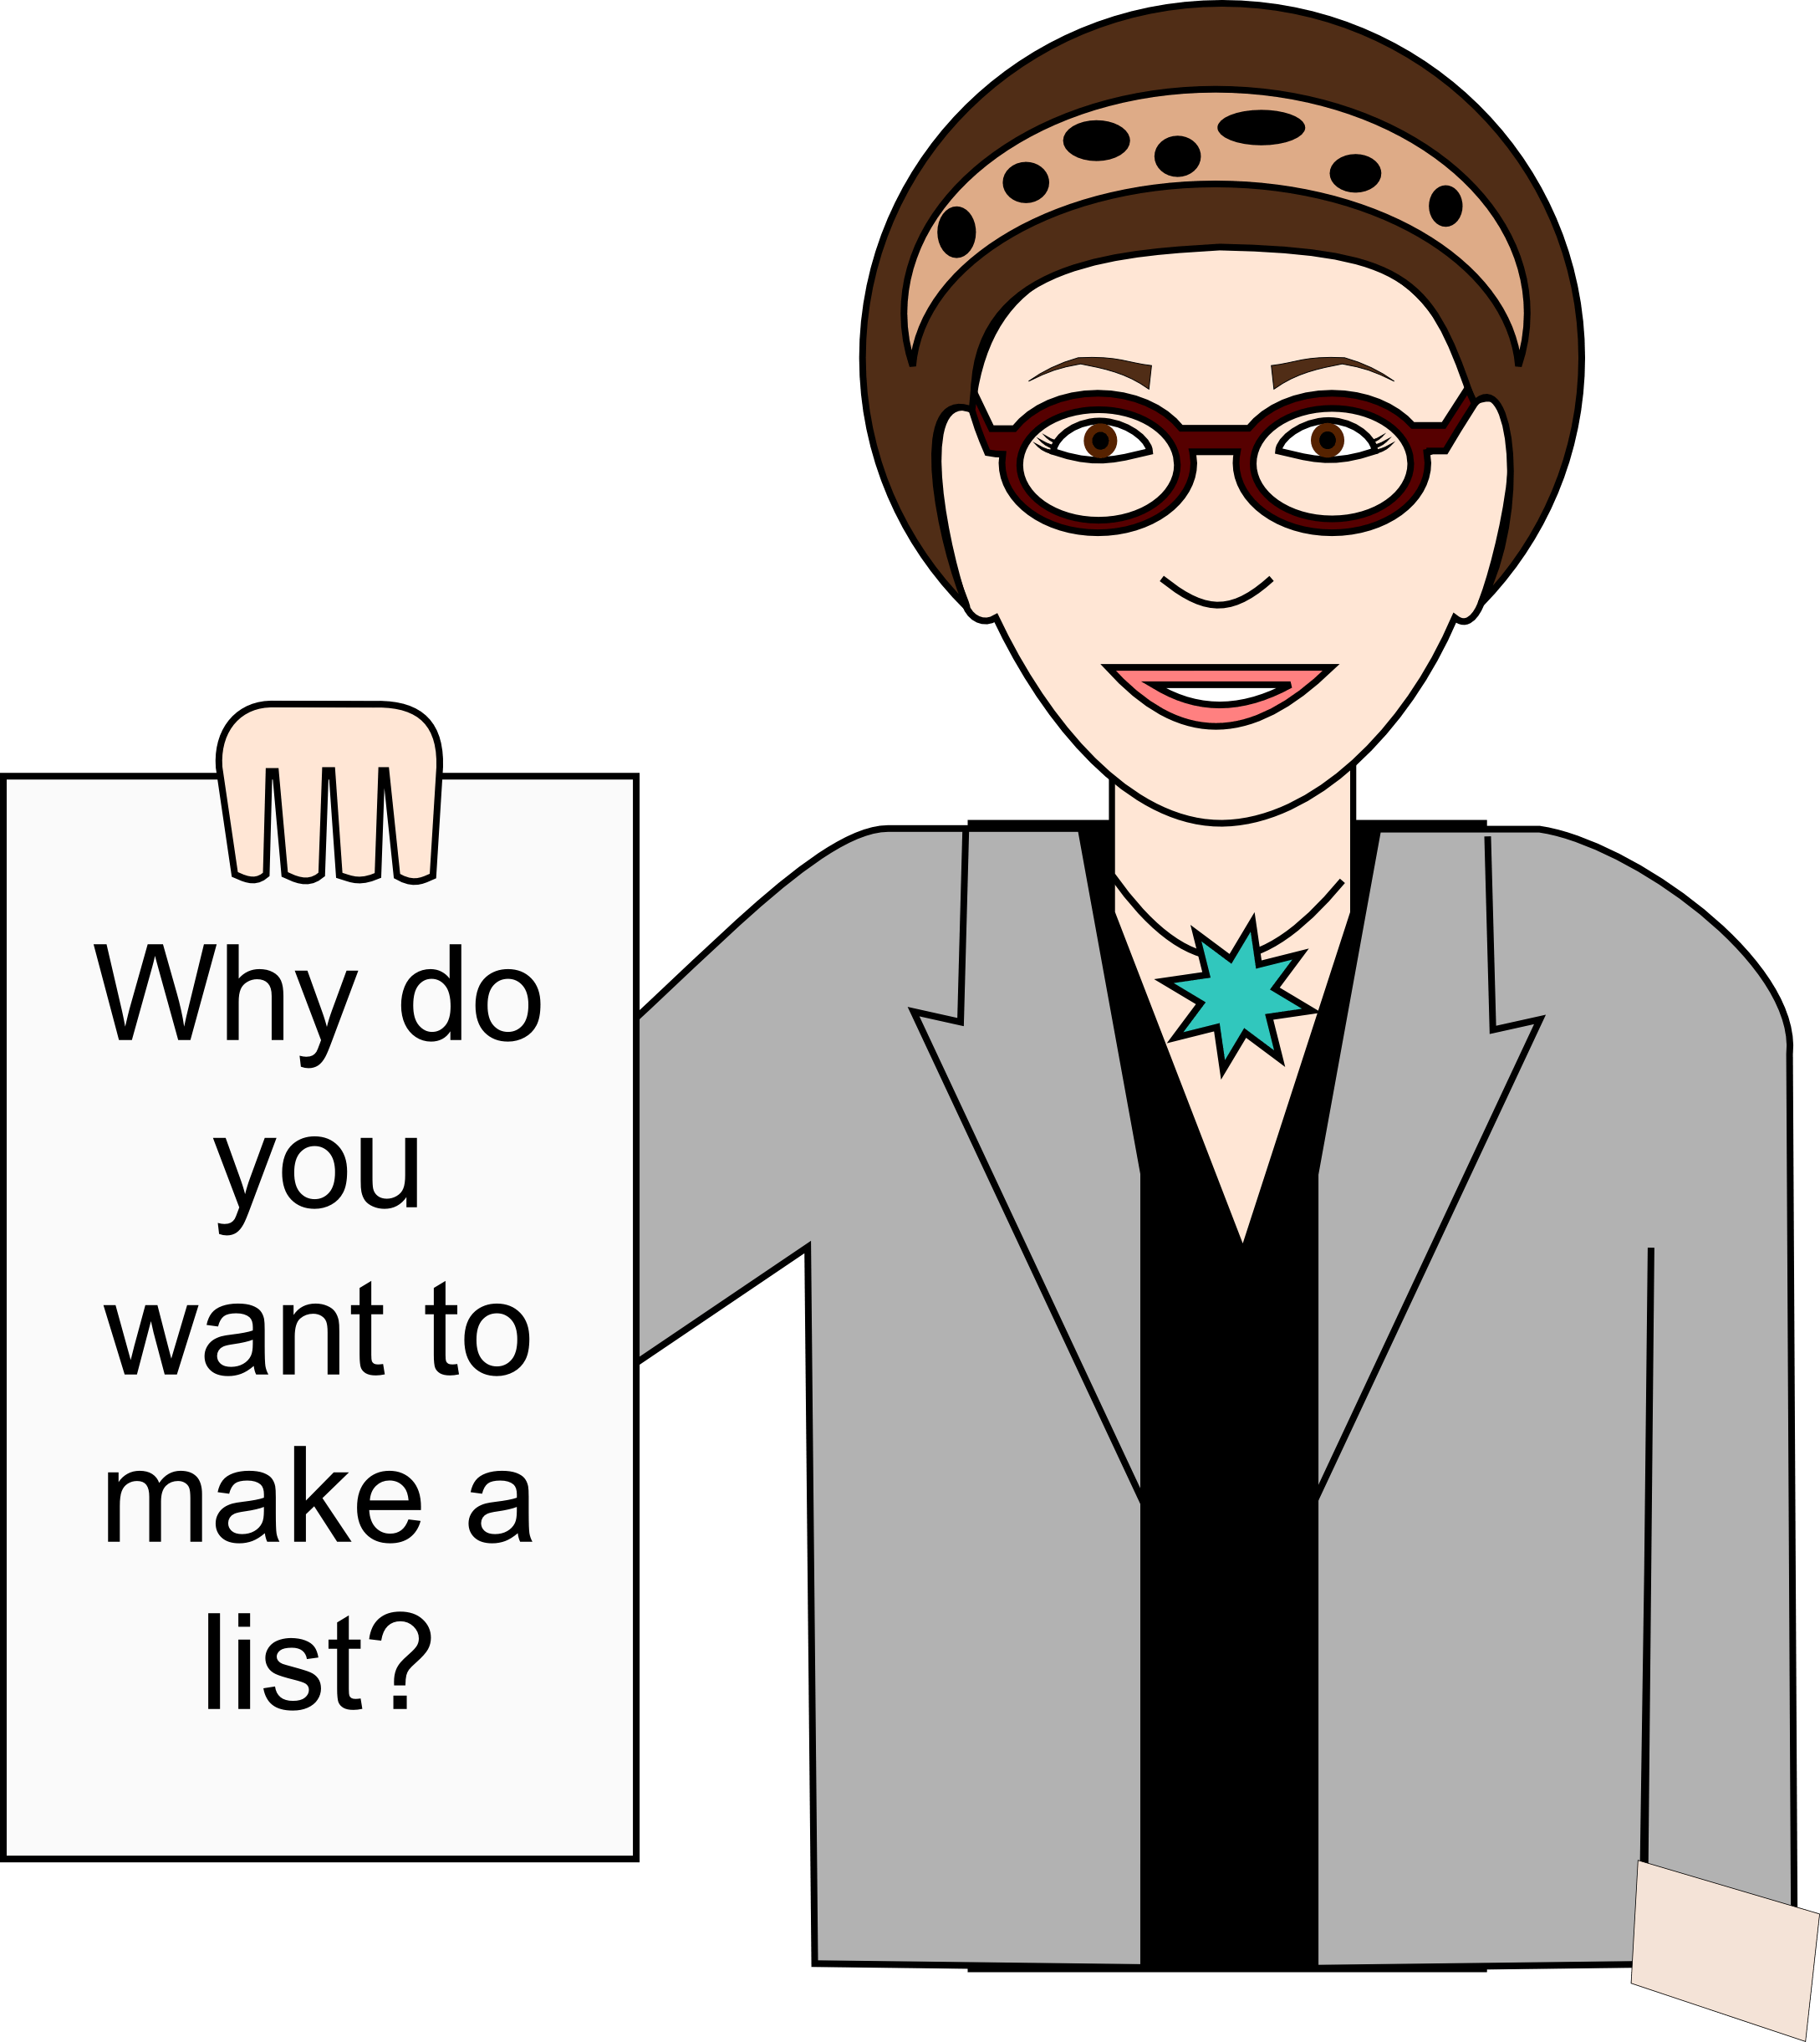 why do you want to make a list